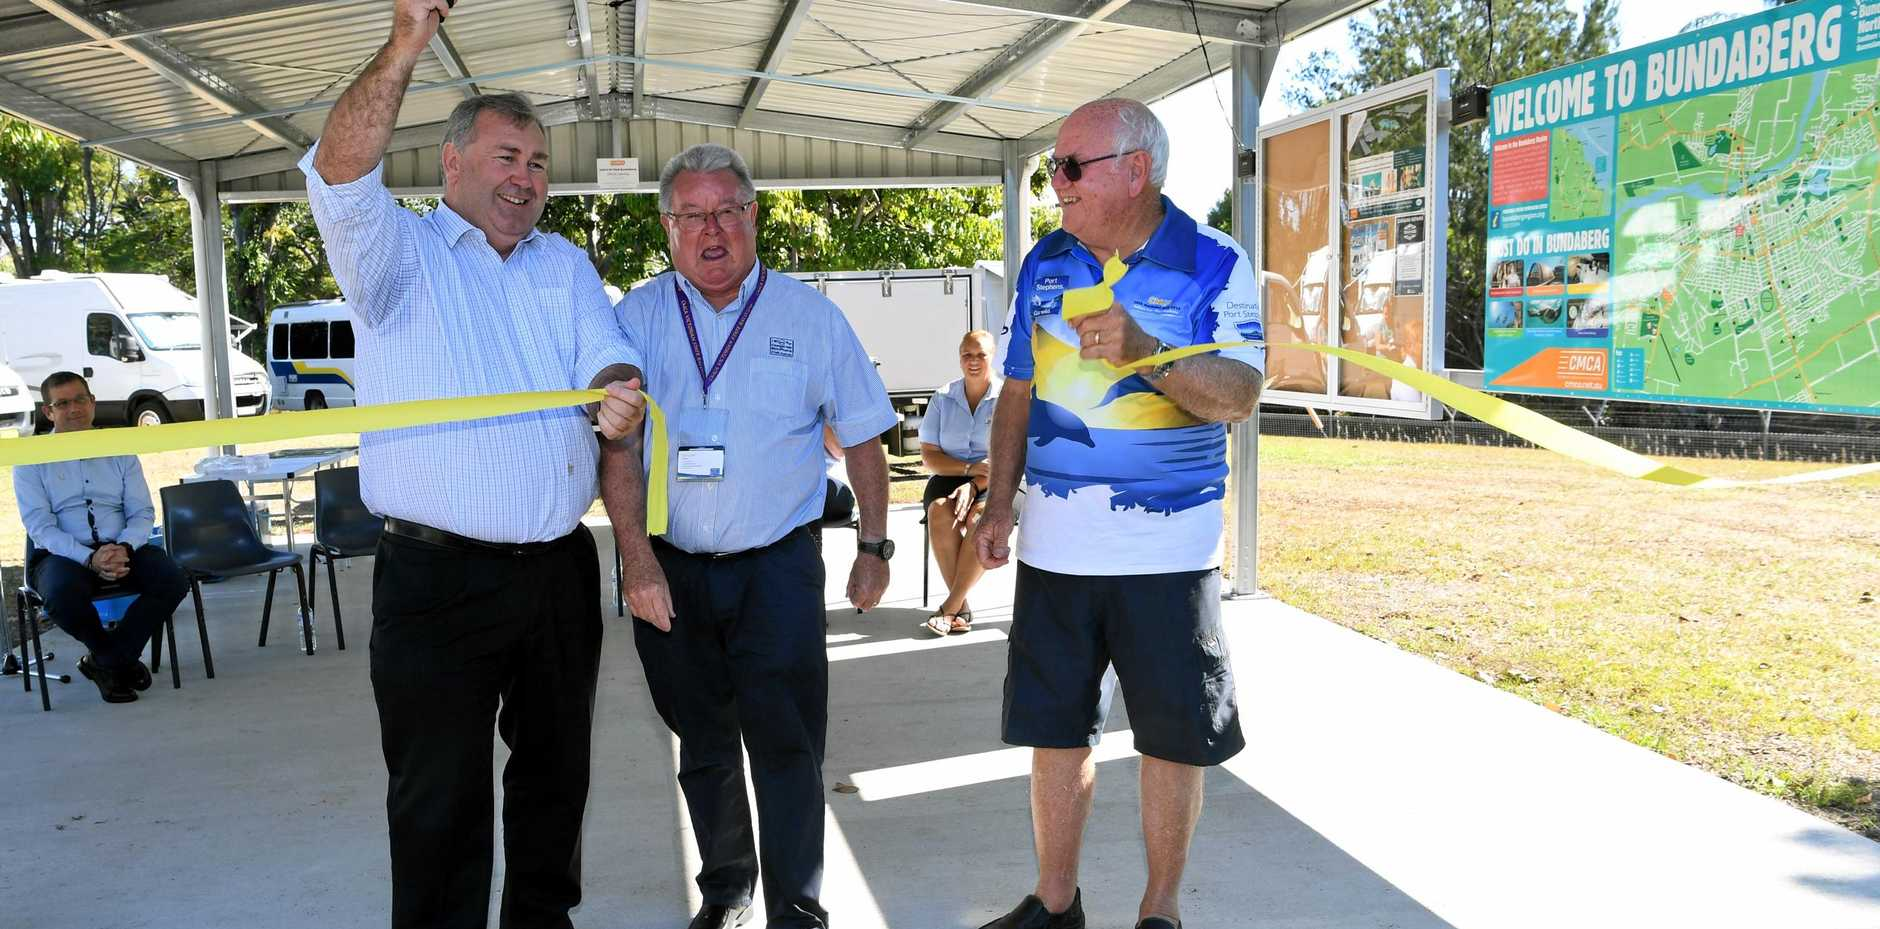 OFFICIAL OPENING: The Bundaberg CMCA RV Park was officially opened by Mayor Jack Dempsey, CMCA chairman Garry Lee and local CMCA member Arthur Bugden, the driving force behind the project.